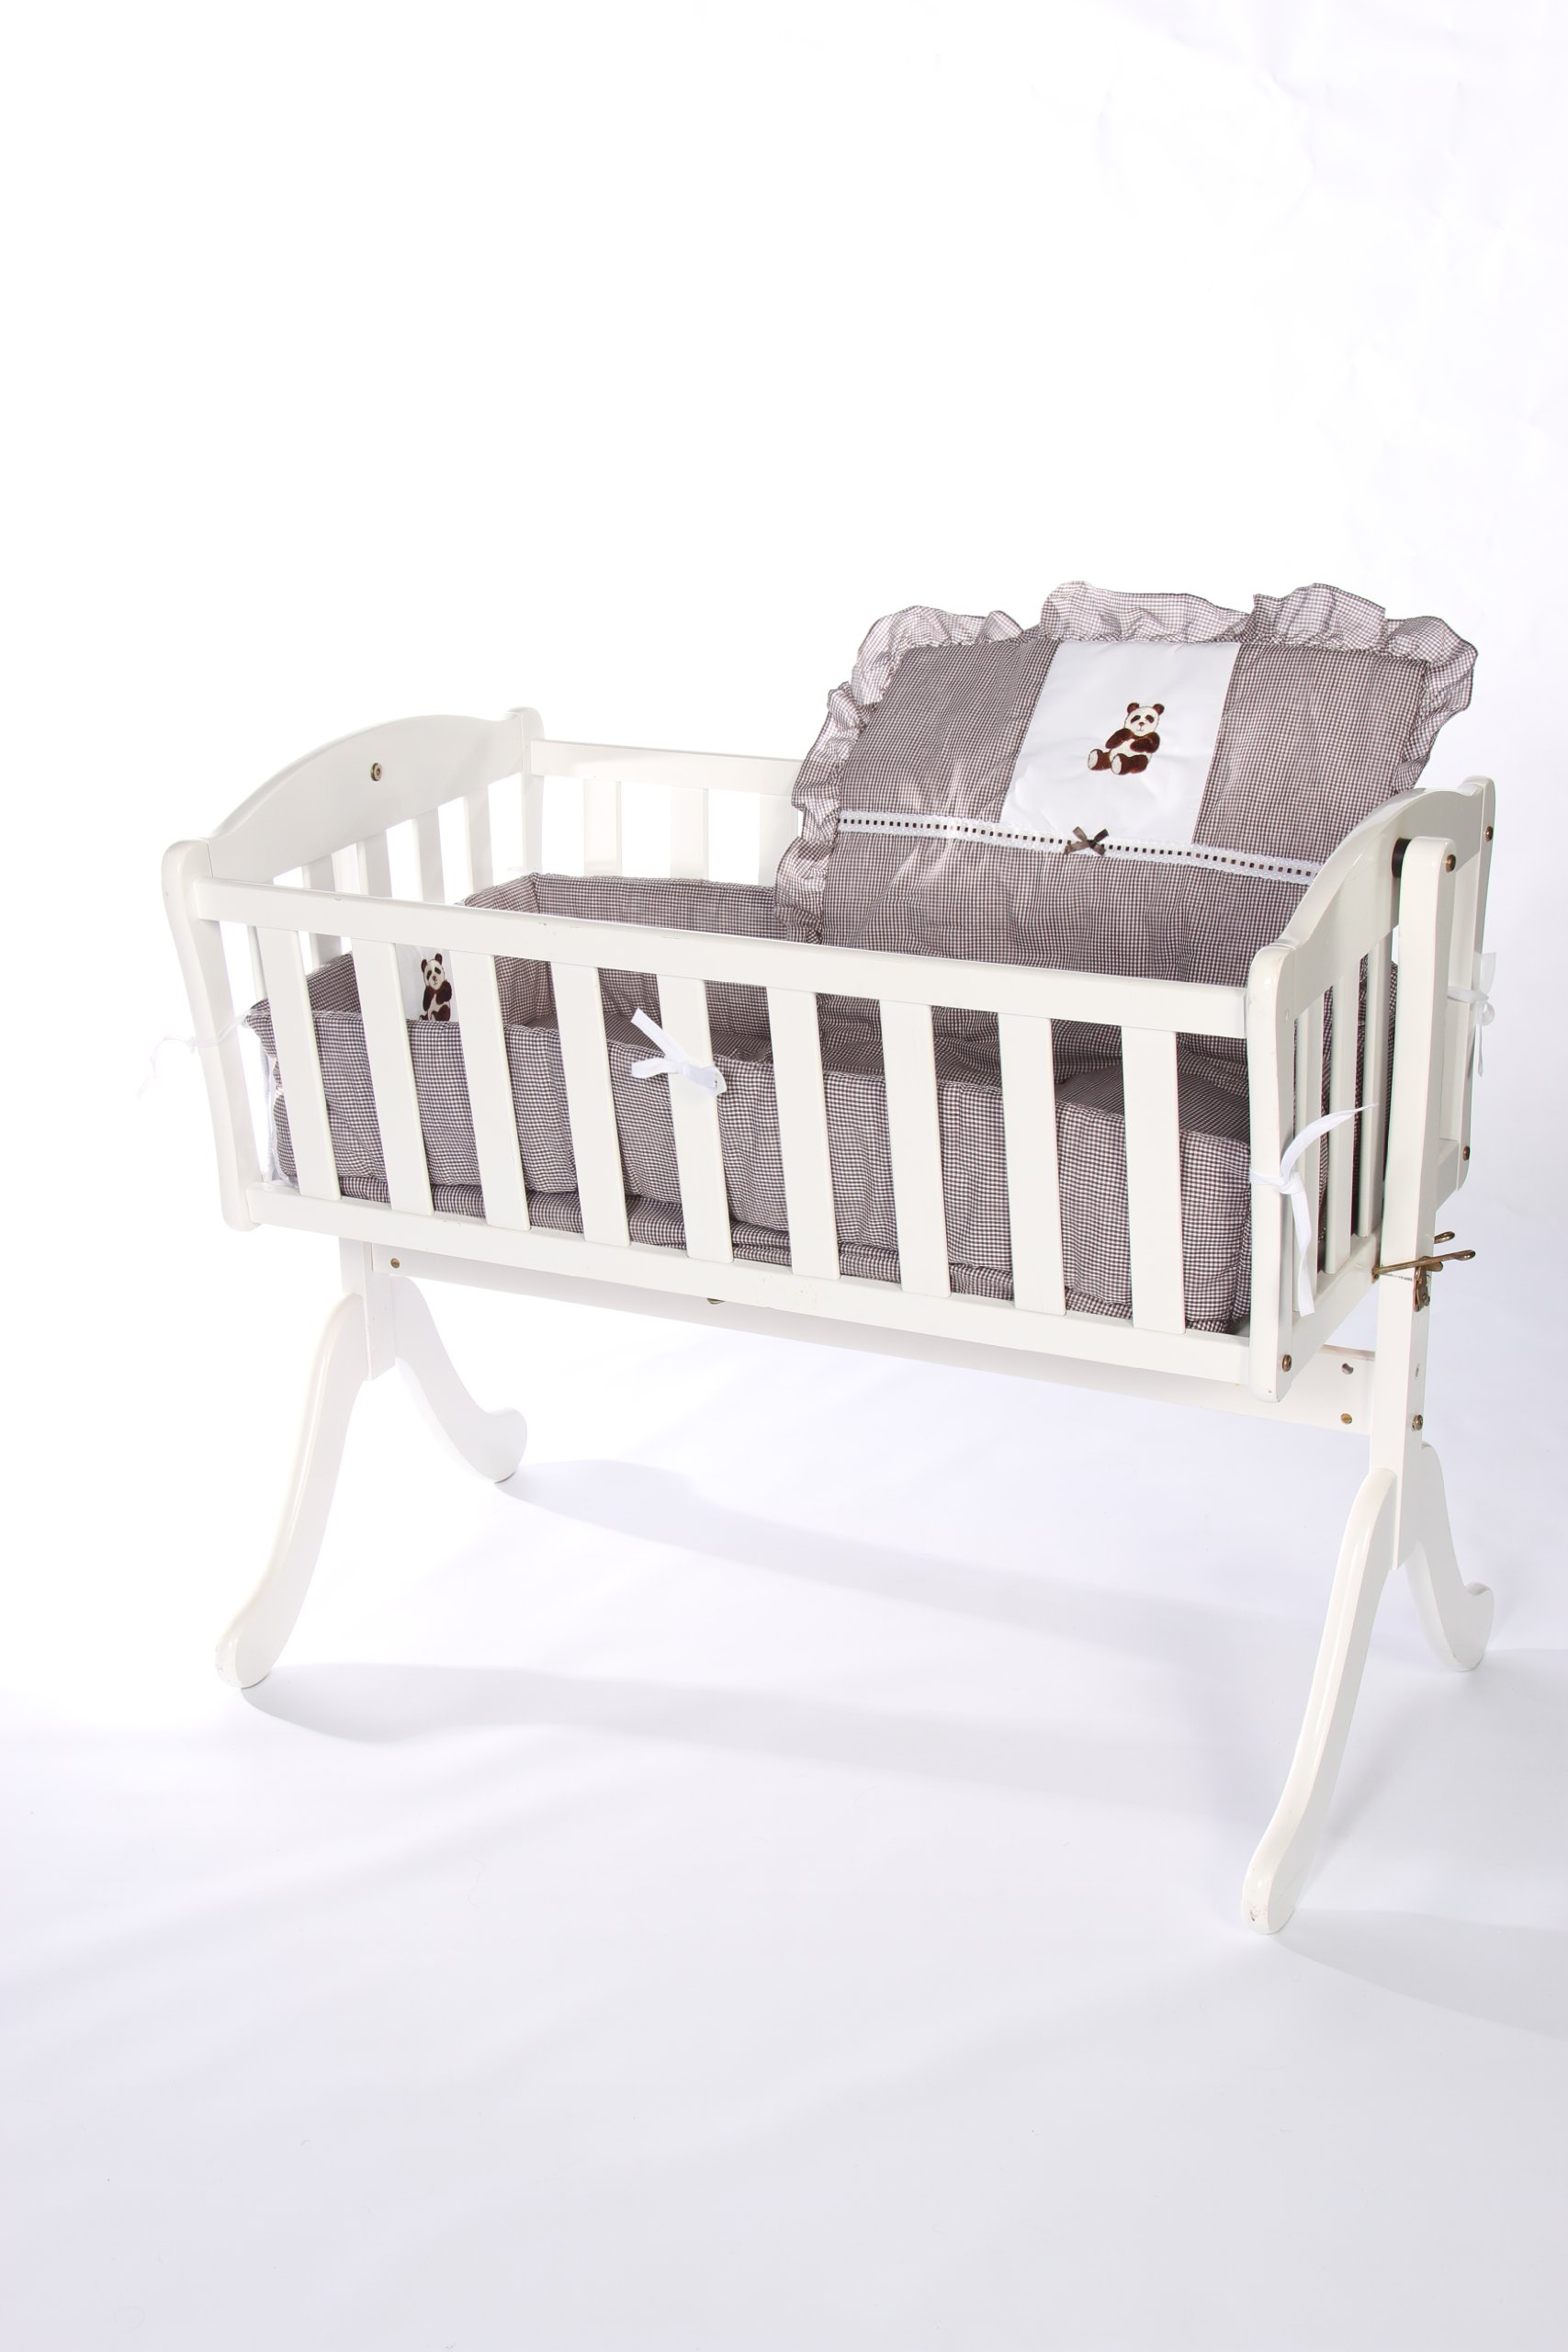 Baby Doll Bedding Gingham with Bear Applique Cradle Bedding Set, Brown